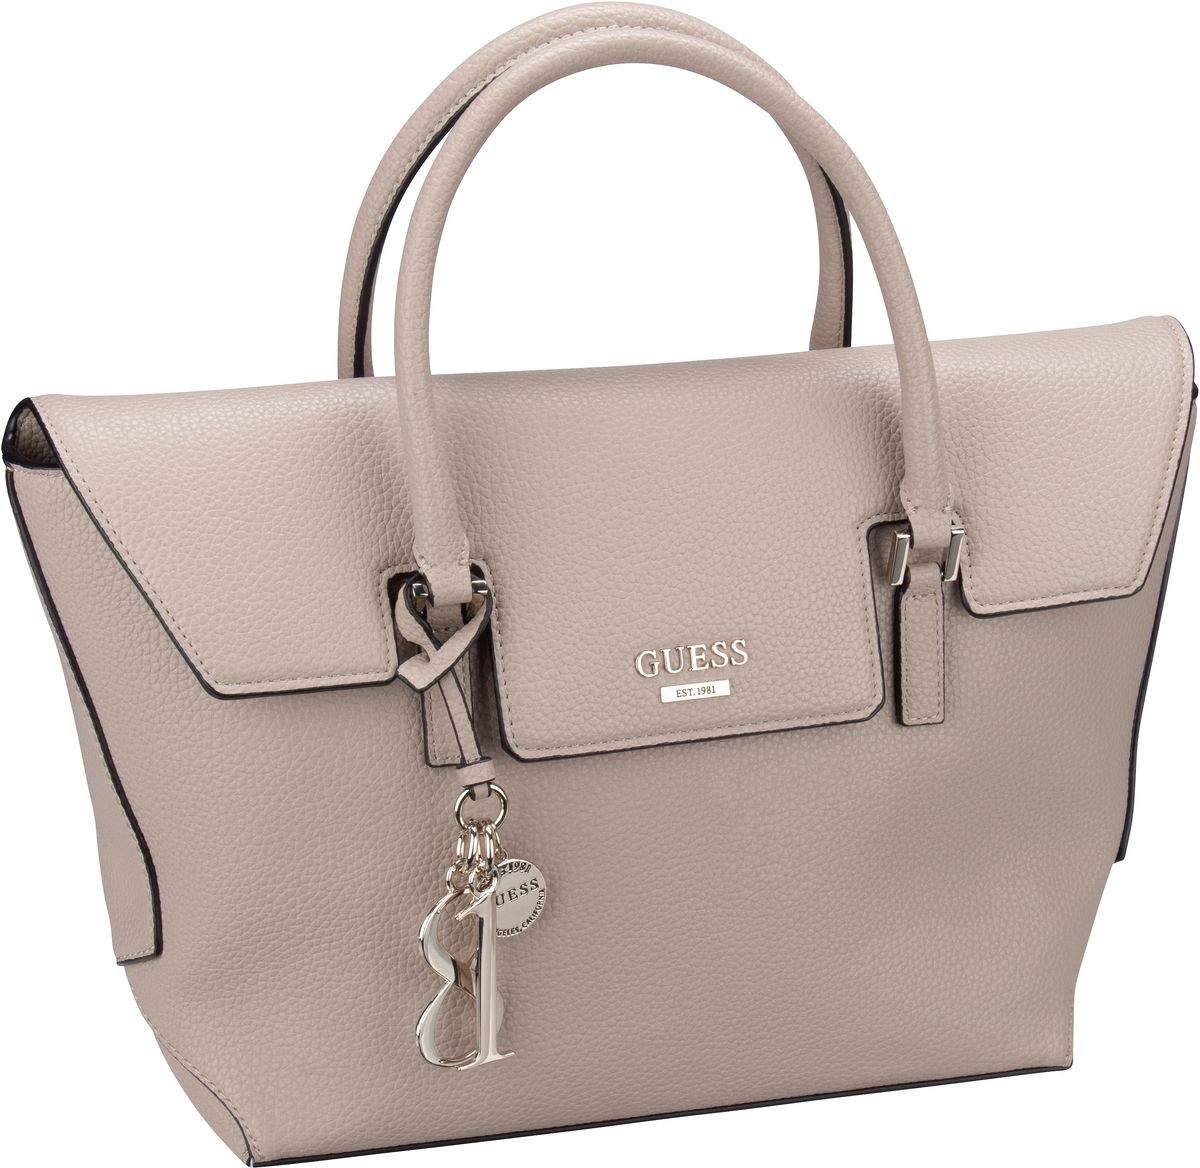 Handtasche West Side Flap Satchel Tan